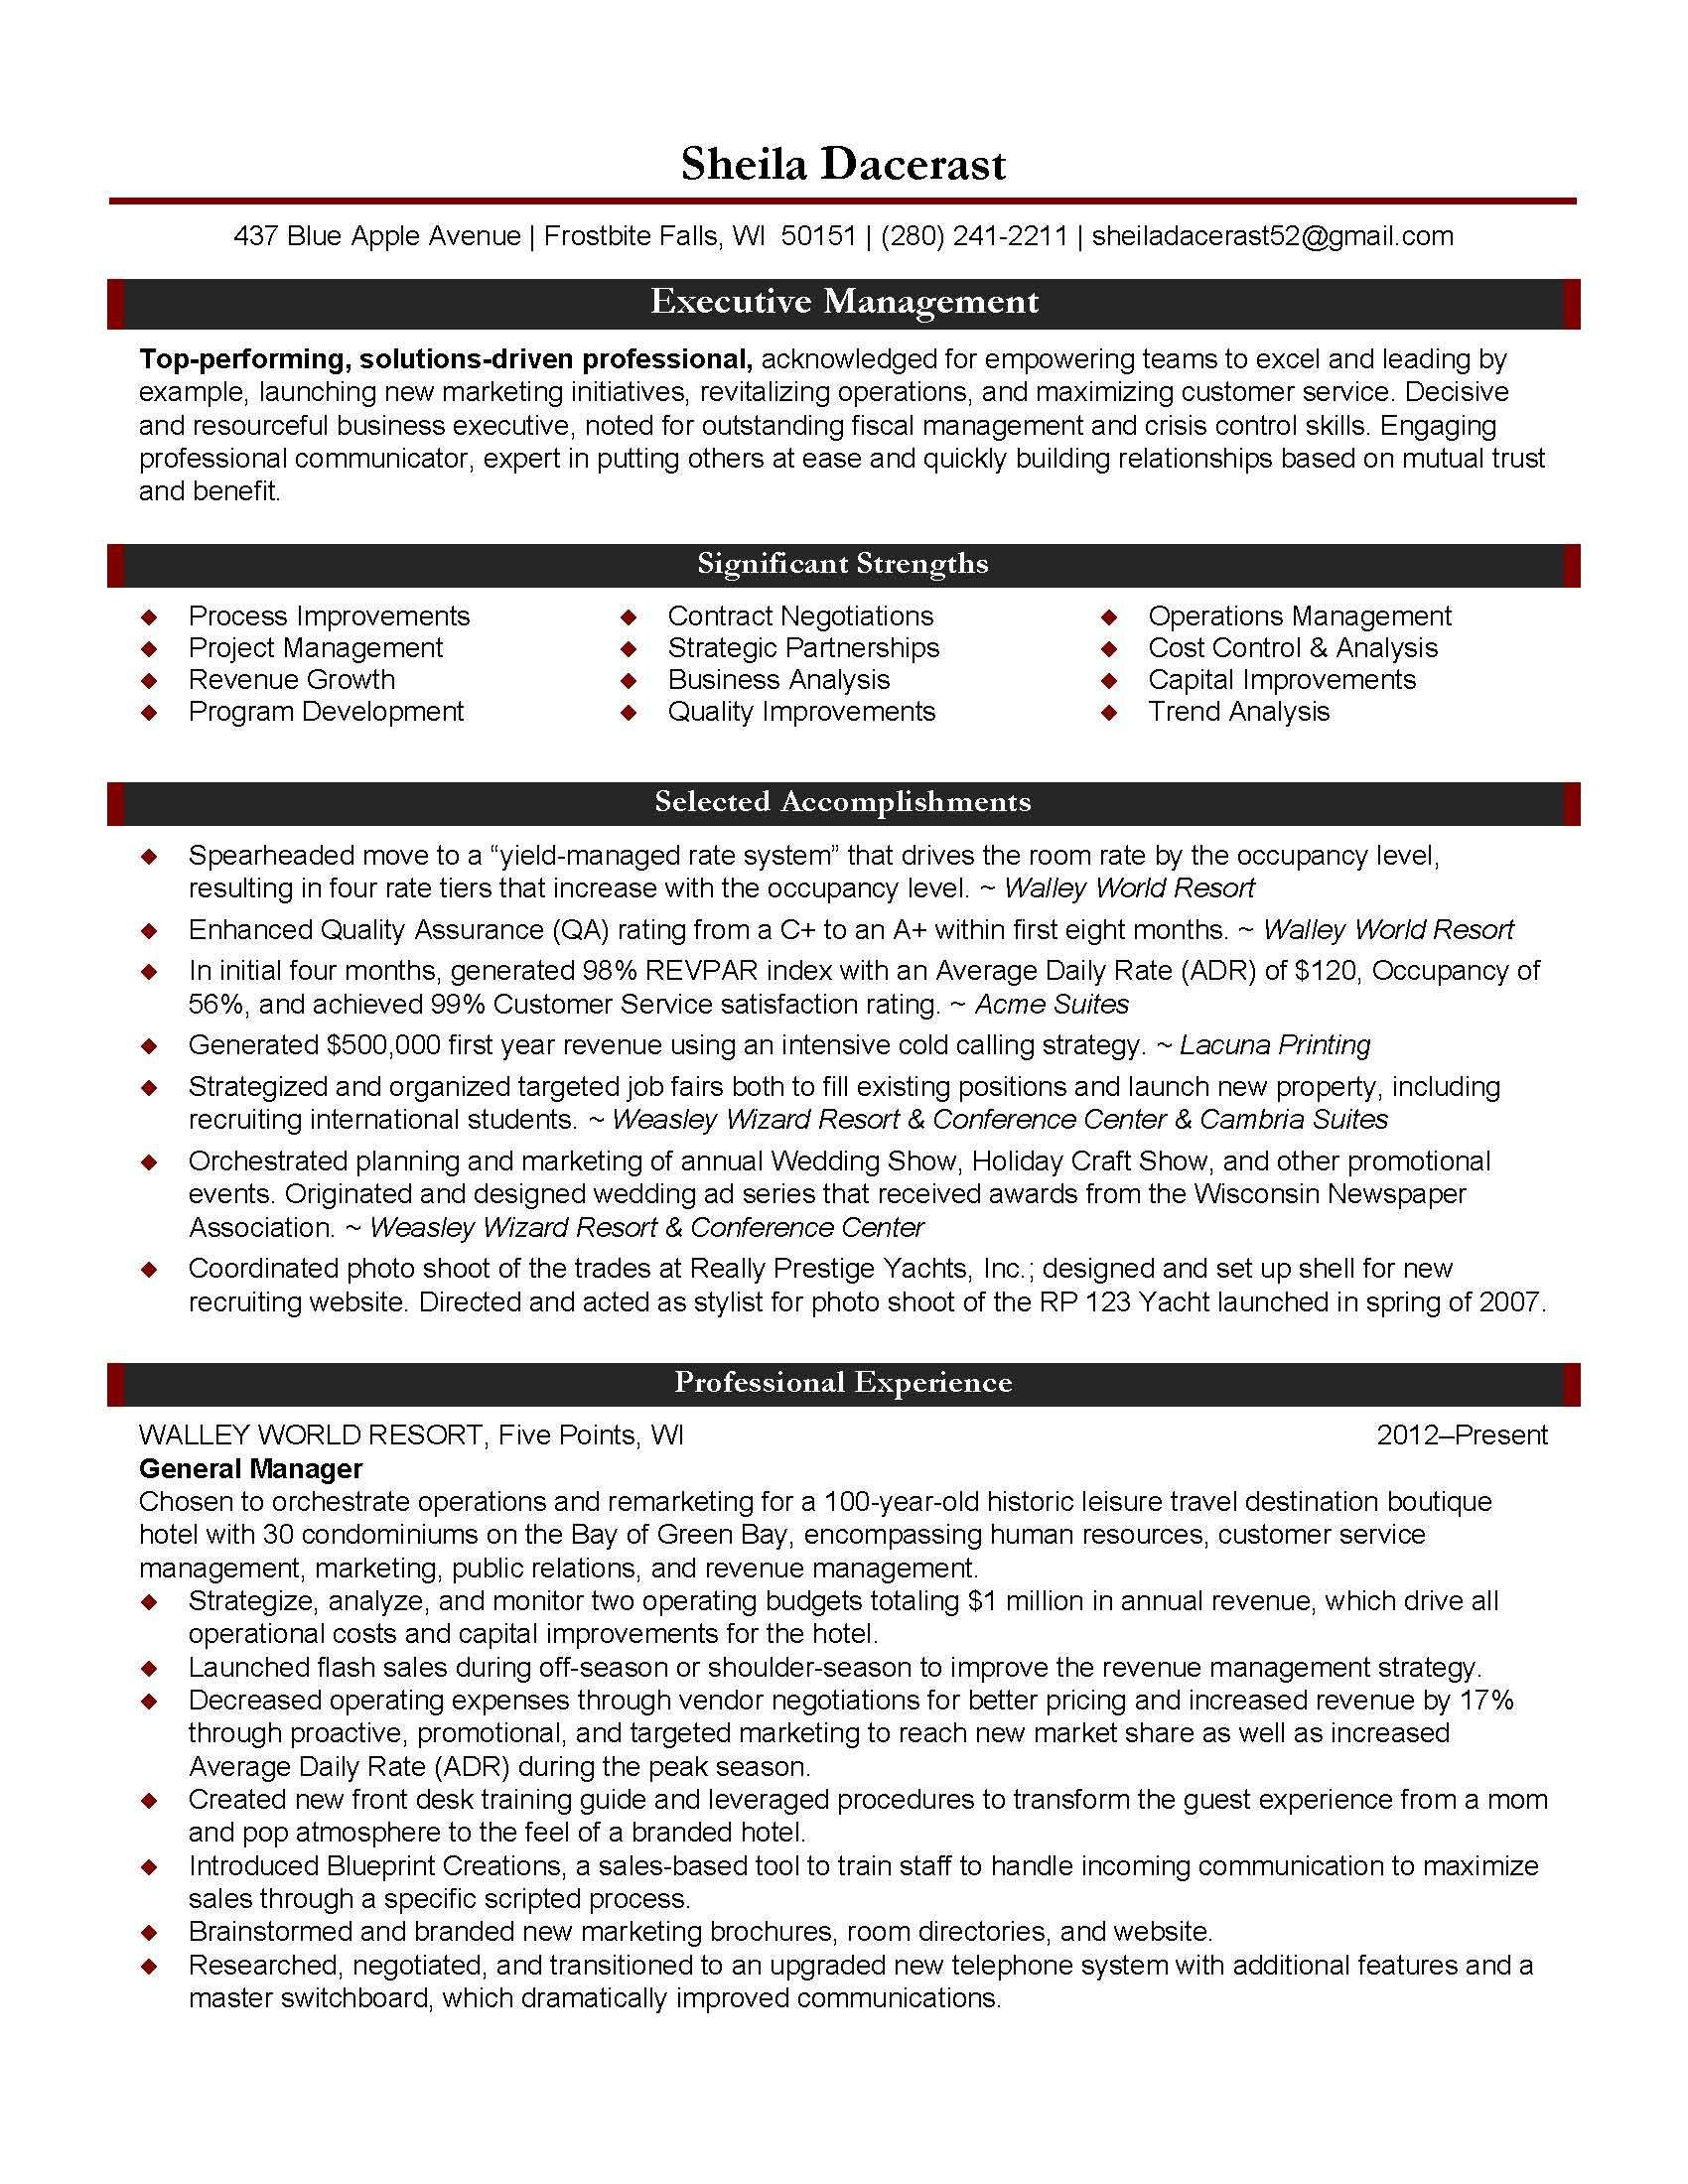 Project Management Skills Resume Executive Director Resume Non Profit Service Project Manager